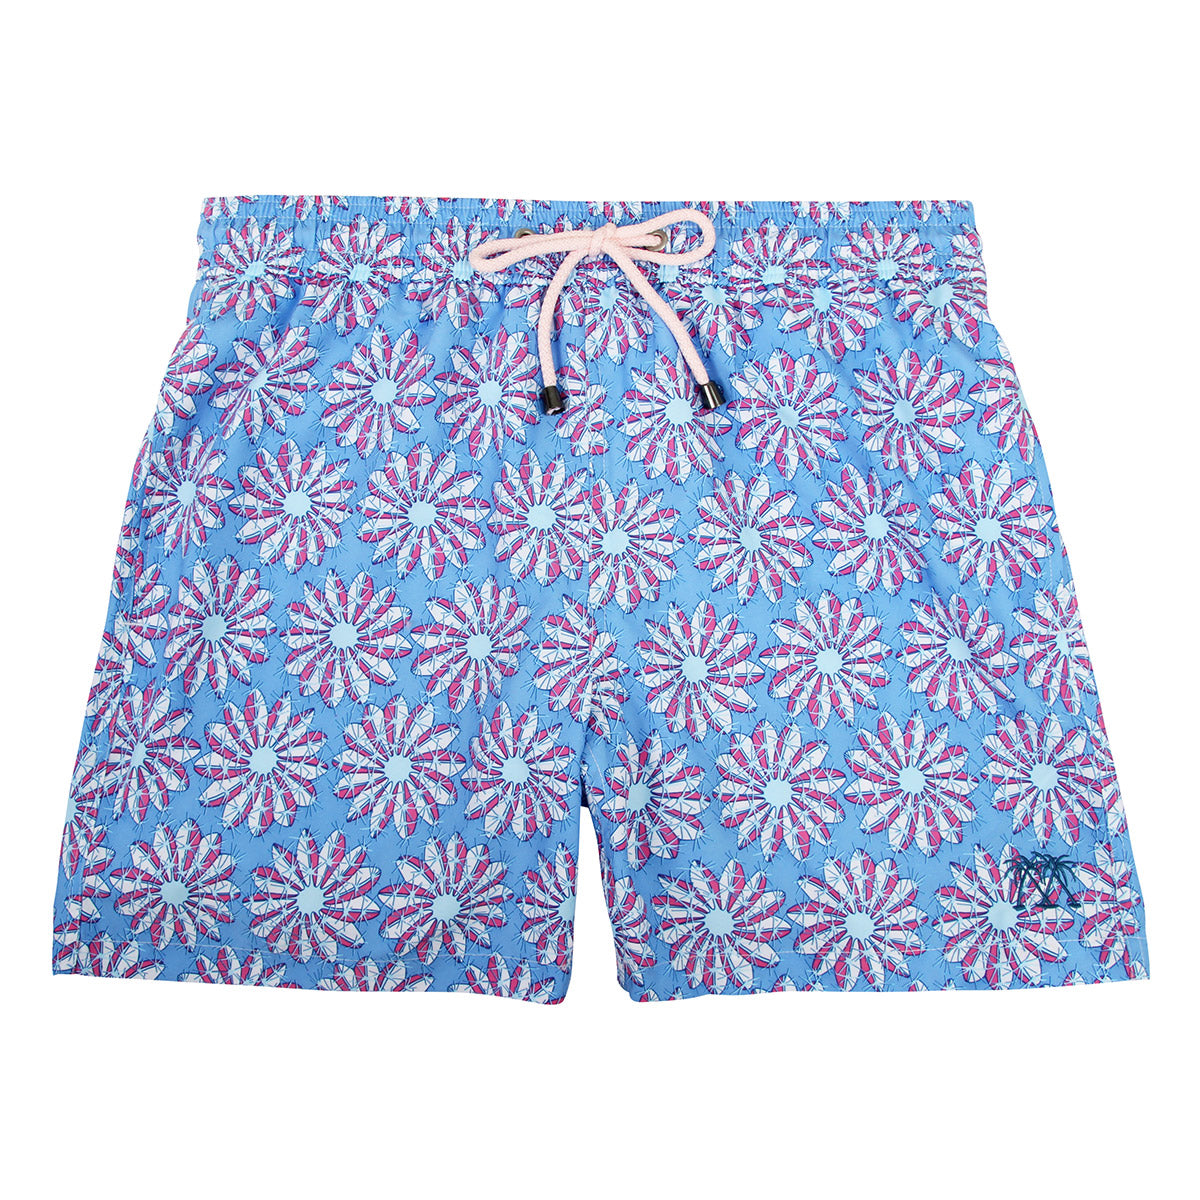 8f28facb42d35 Mens swim trunks : CACTUS - BLUE/PINK - Pink House Mustique